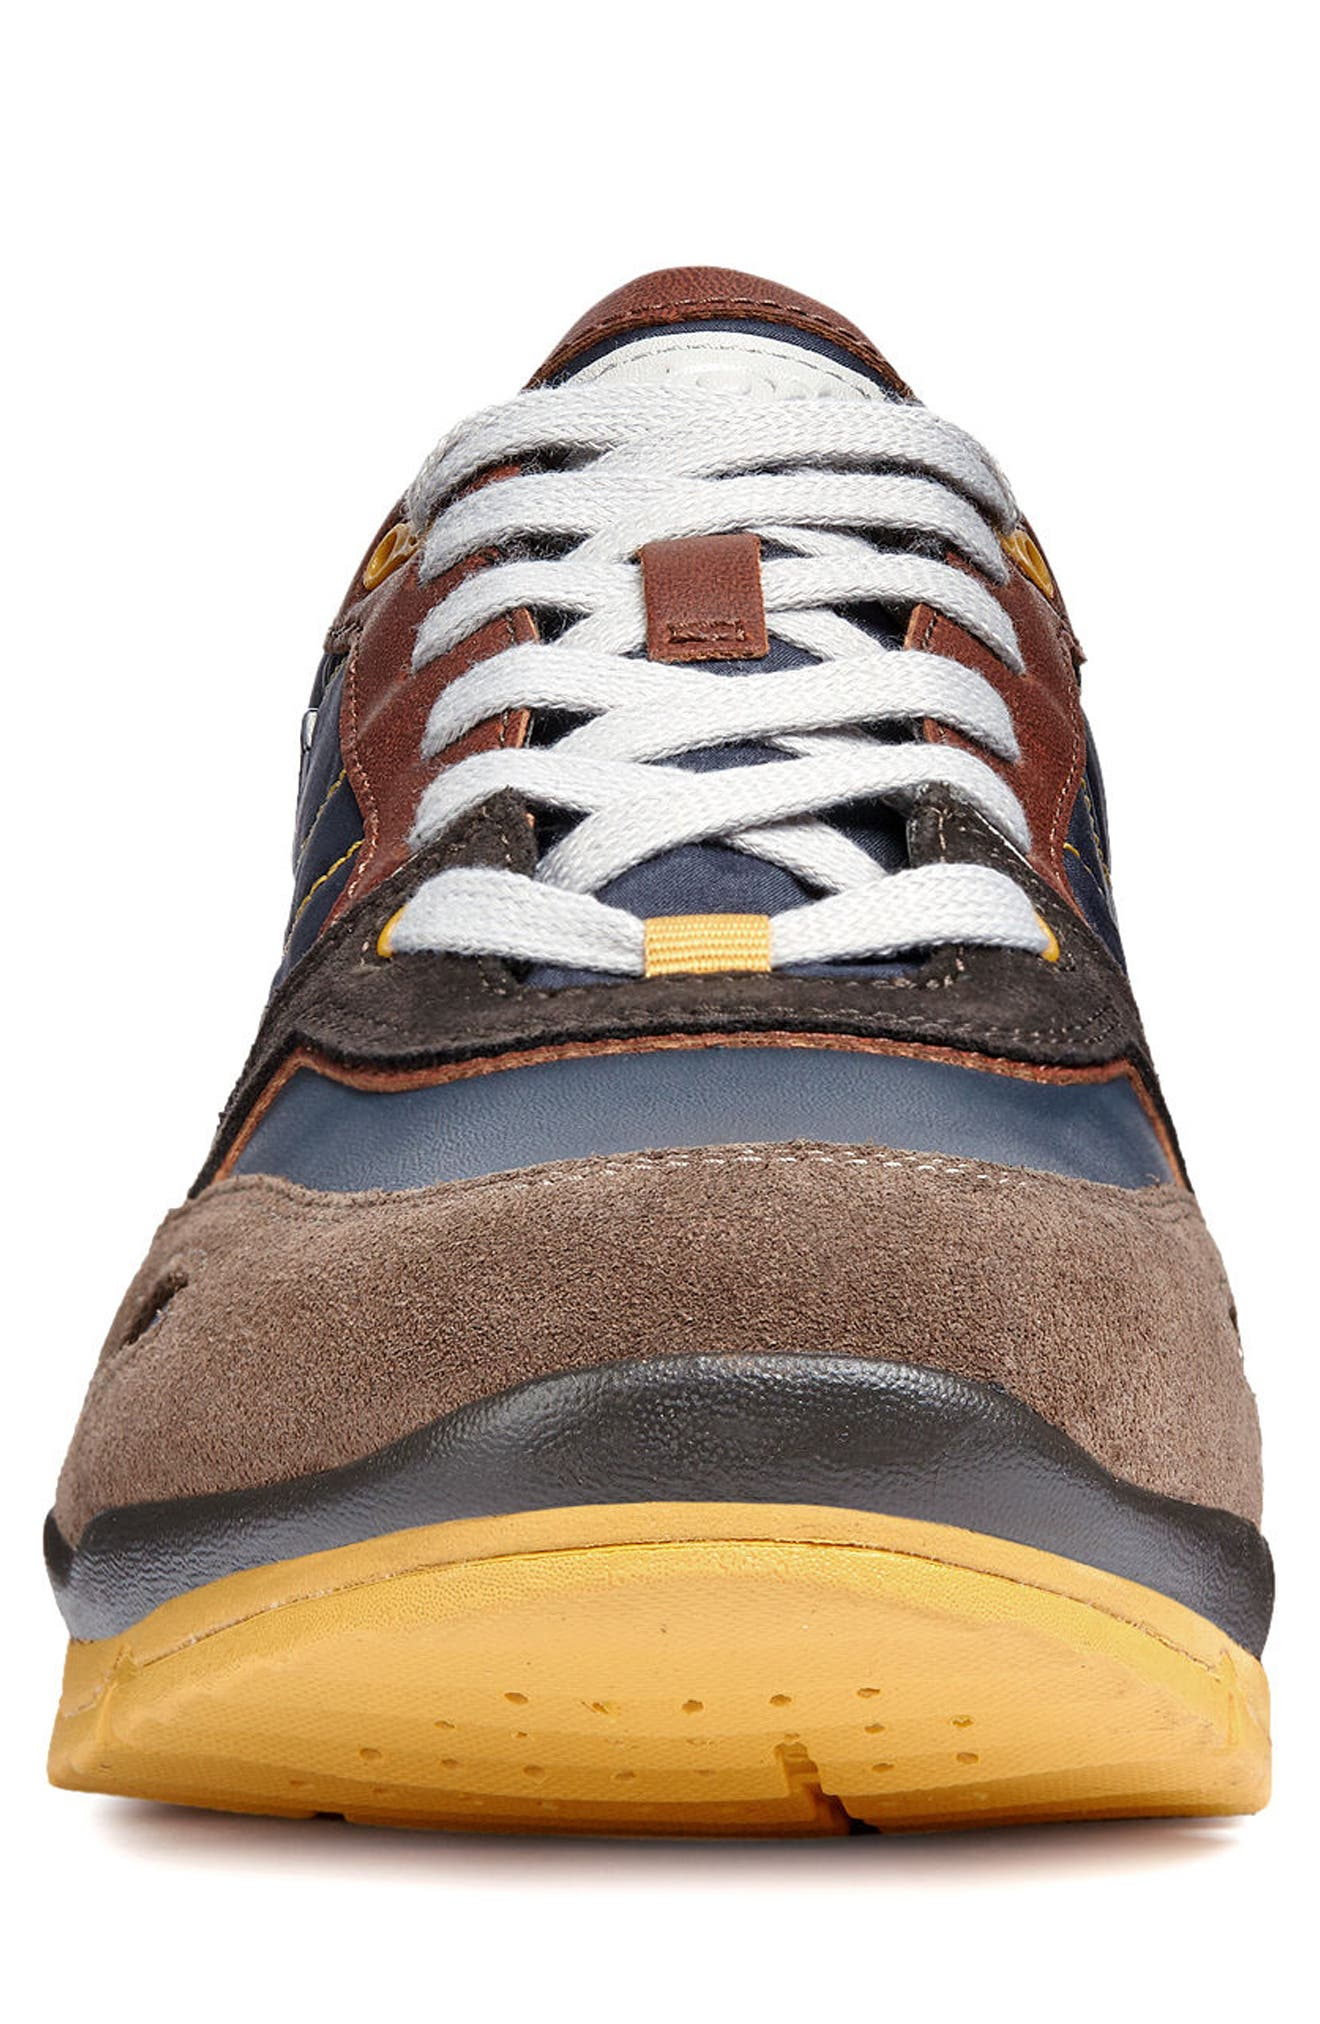 Sandford ABX 1 Waterproof Low Top Sneaker,                             Alternate thumbnail 4, color,                             CHOCOLATE/ NAVY LEATHER